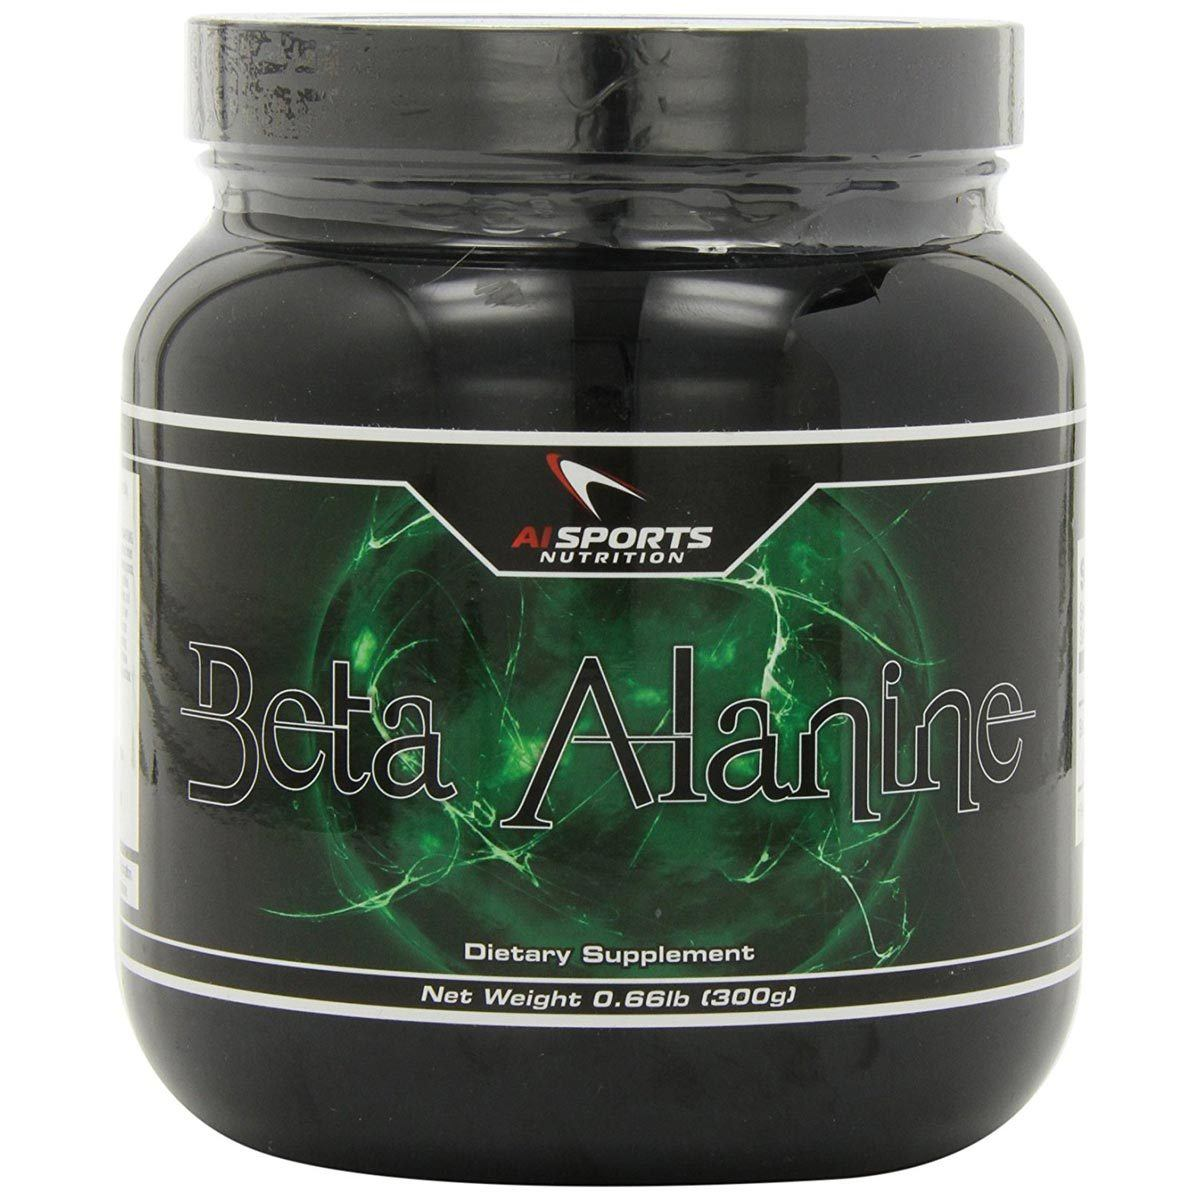 AI Sports Nutrition Beta Alanine 300 Grams Sport Performance / Recovery AI Sports Nutrition  (1058778054699)